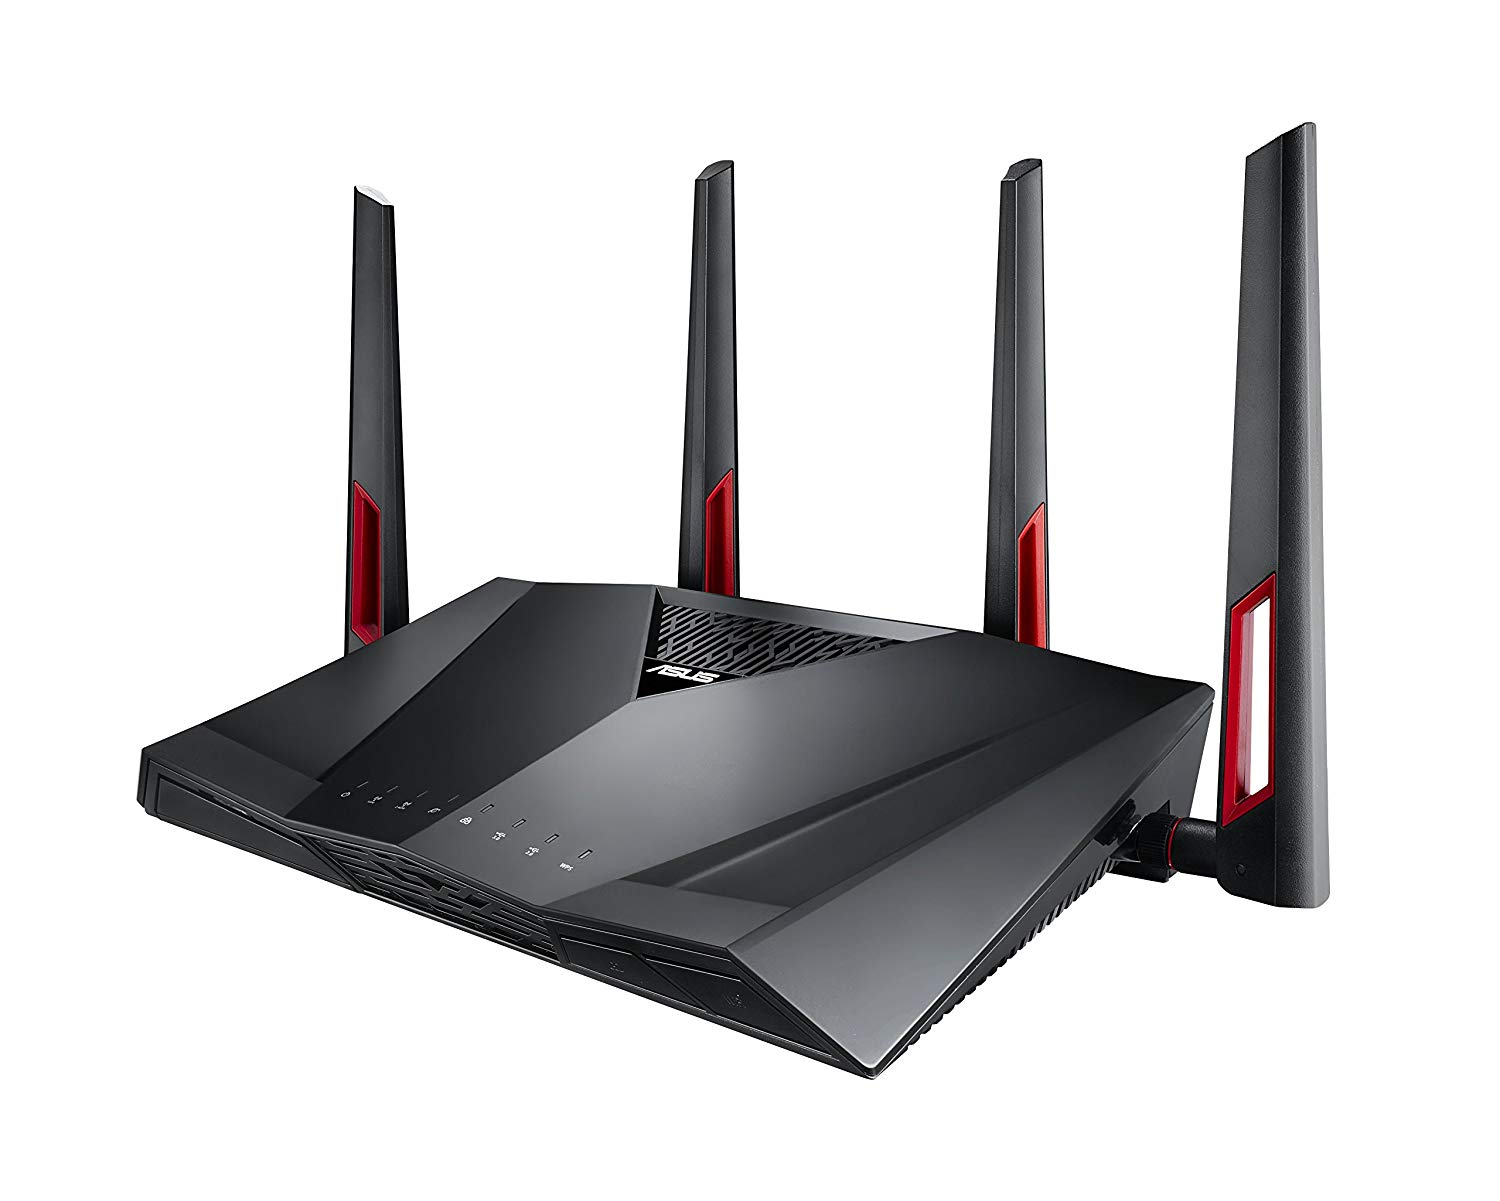 ASUS Dual-Band WiFi Gaming Router (AC3100)